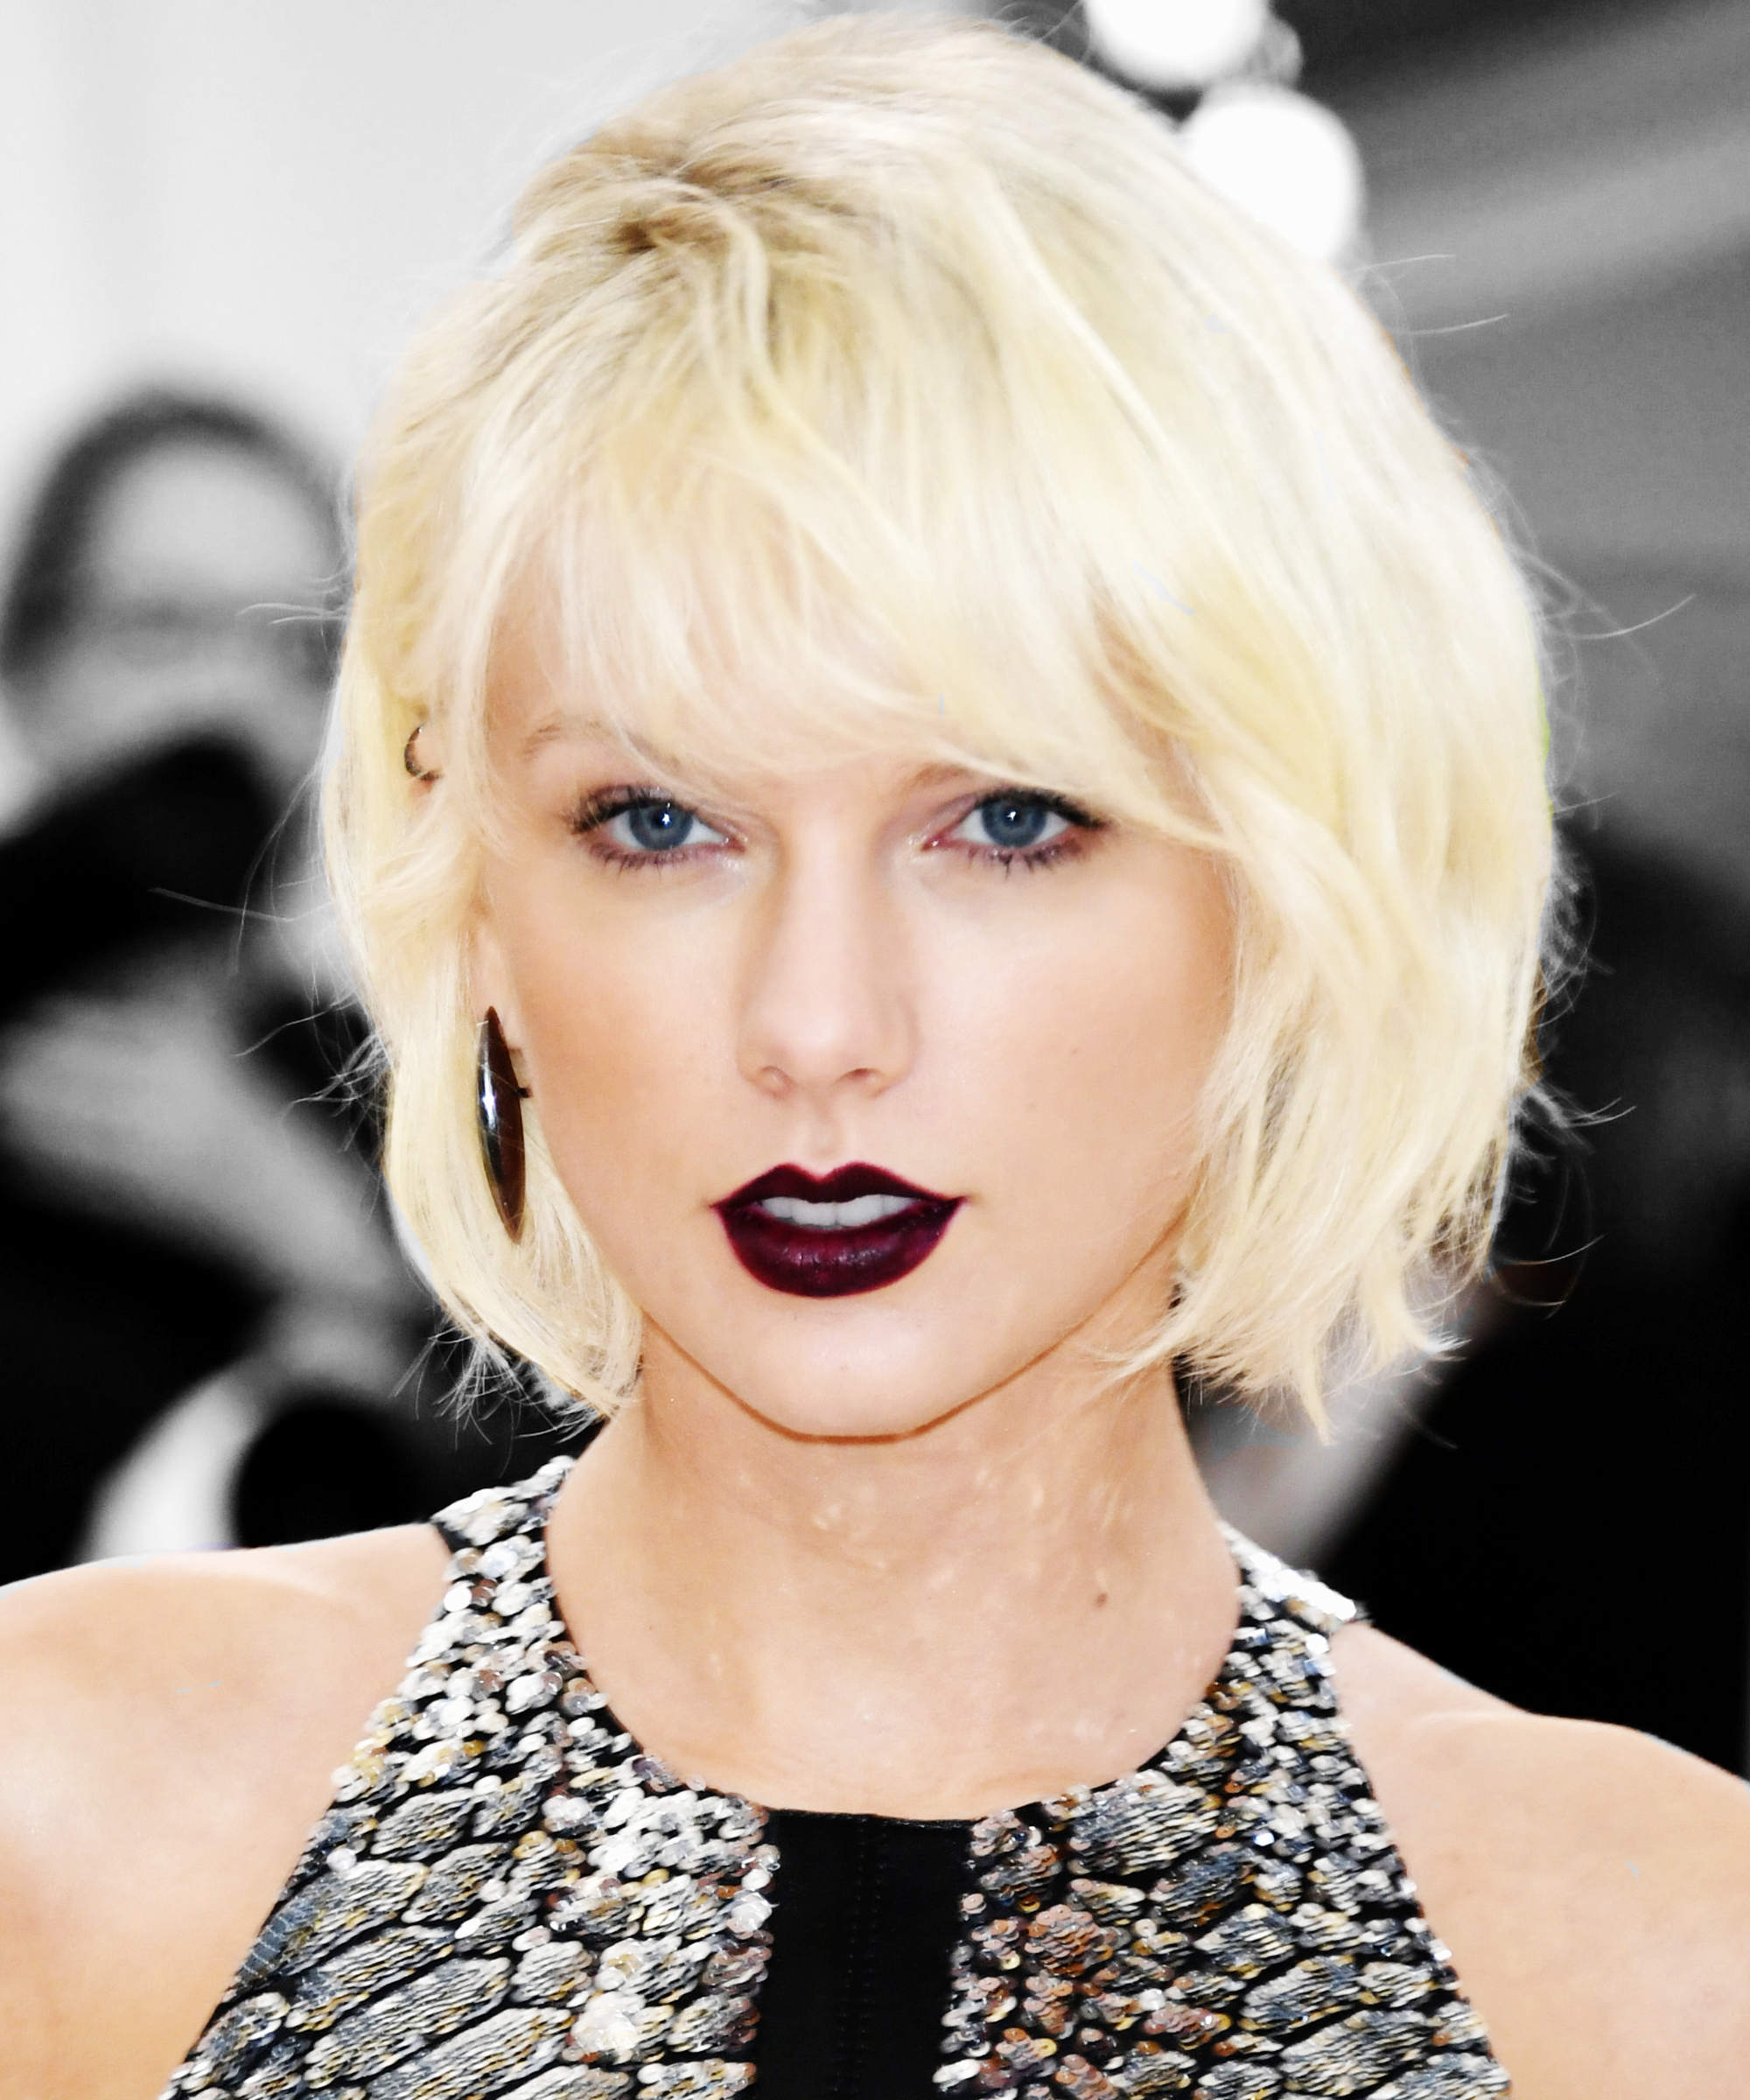 Taylor Swift Dyes Hair Natural Darker Blond